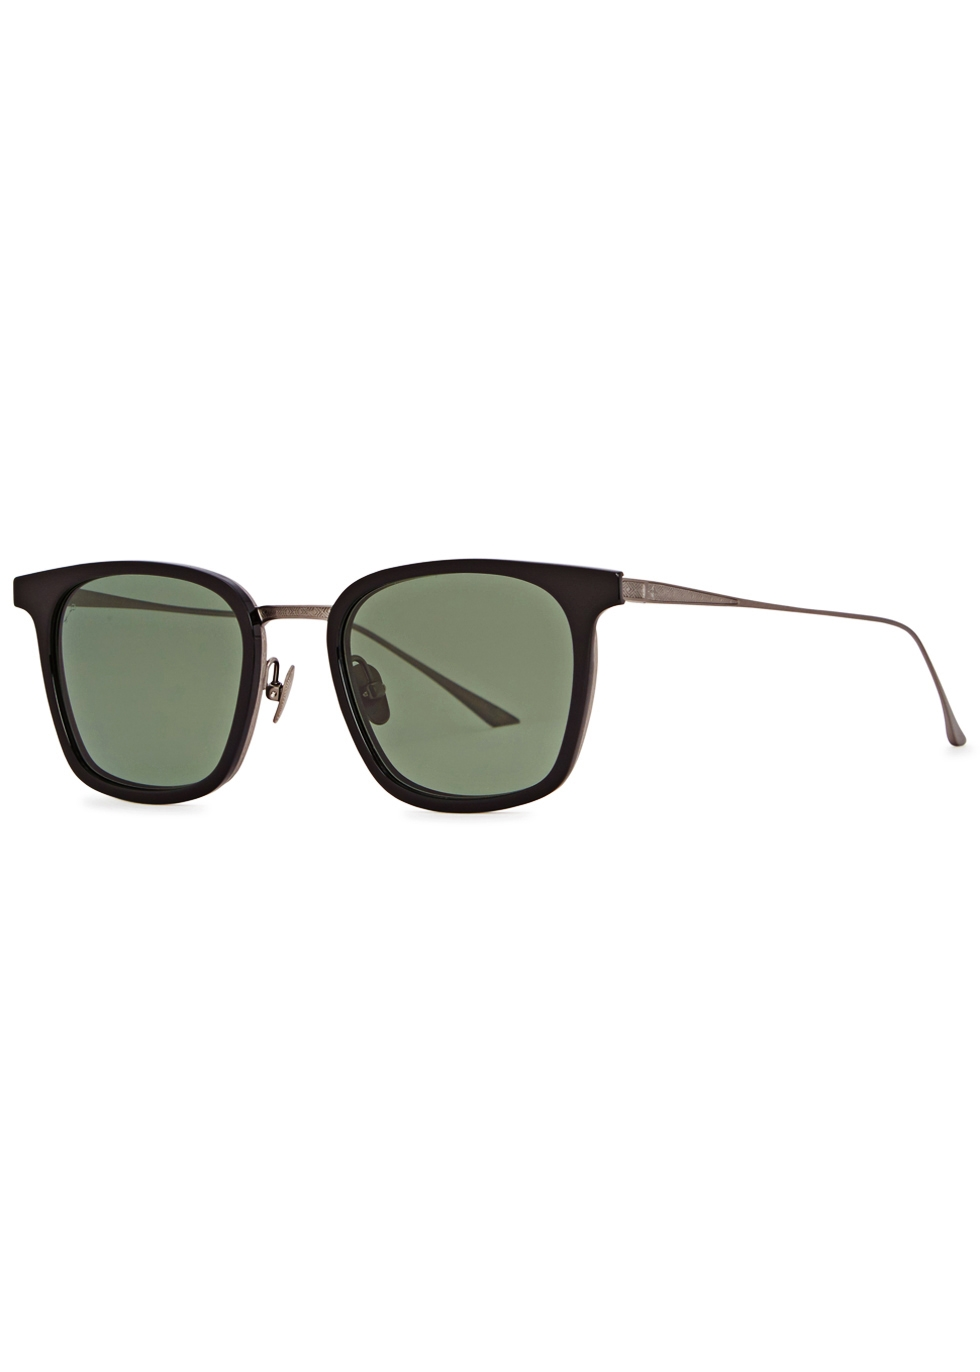 LEISURE SOCIETY EUCLID 12CT ANTIQUE GOLD-PLATED SUNGLASSES